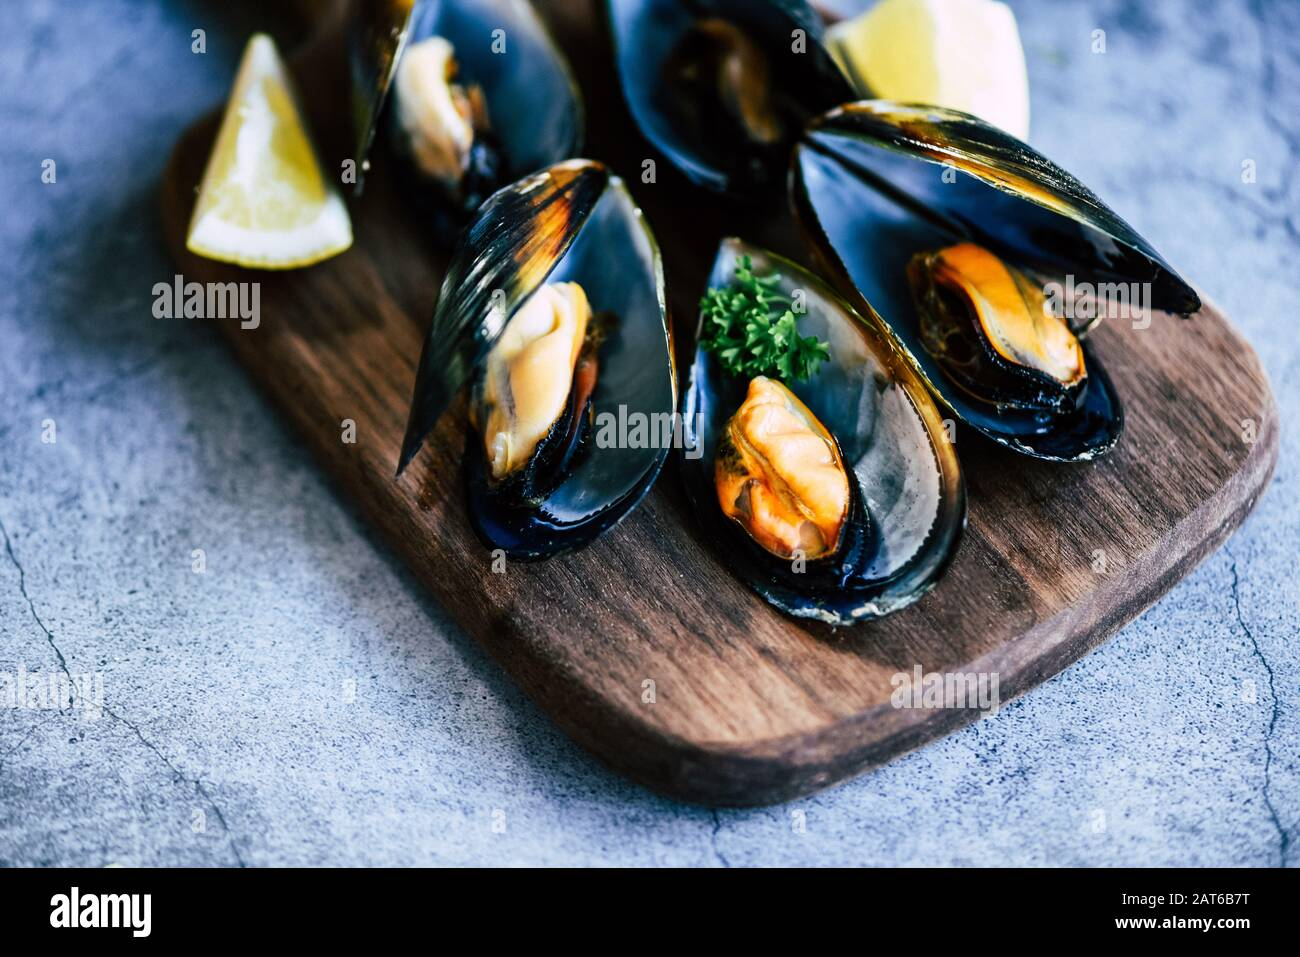 Cooked Mussels with herbs lemon and dark plate background / Fresh seafood shellfish on wooden cutting board in the restaurant mussel shell food Stock Photo